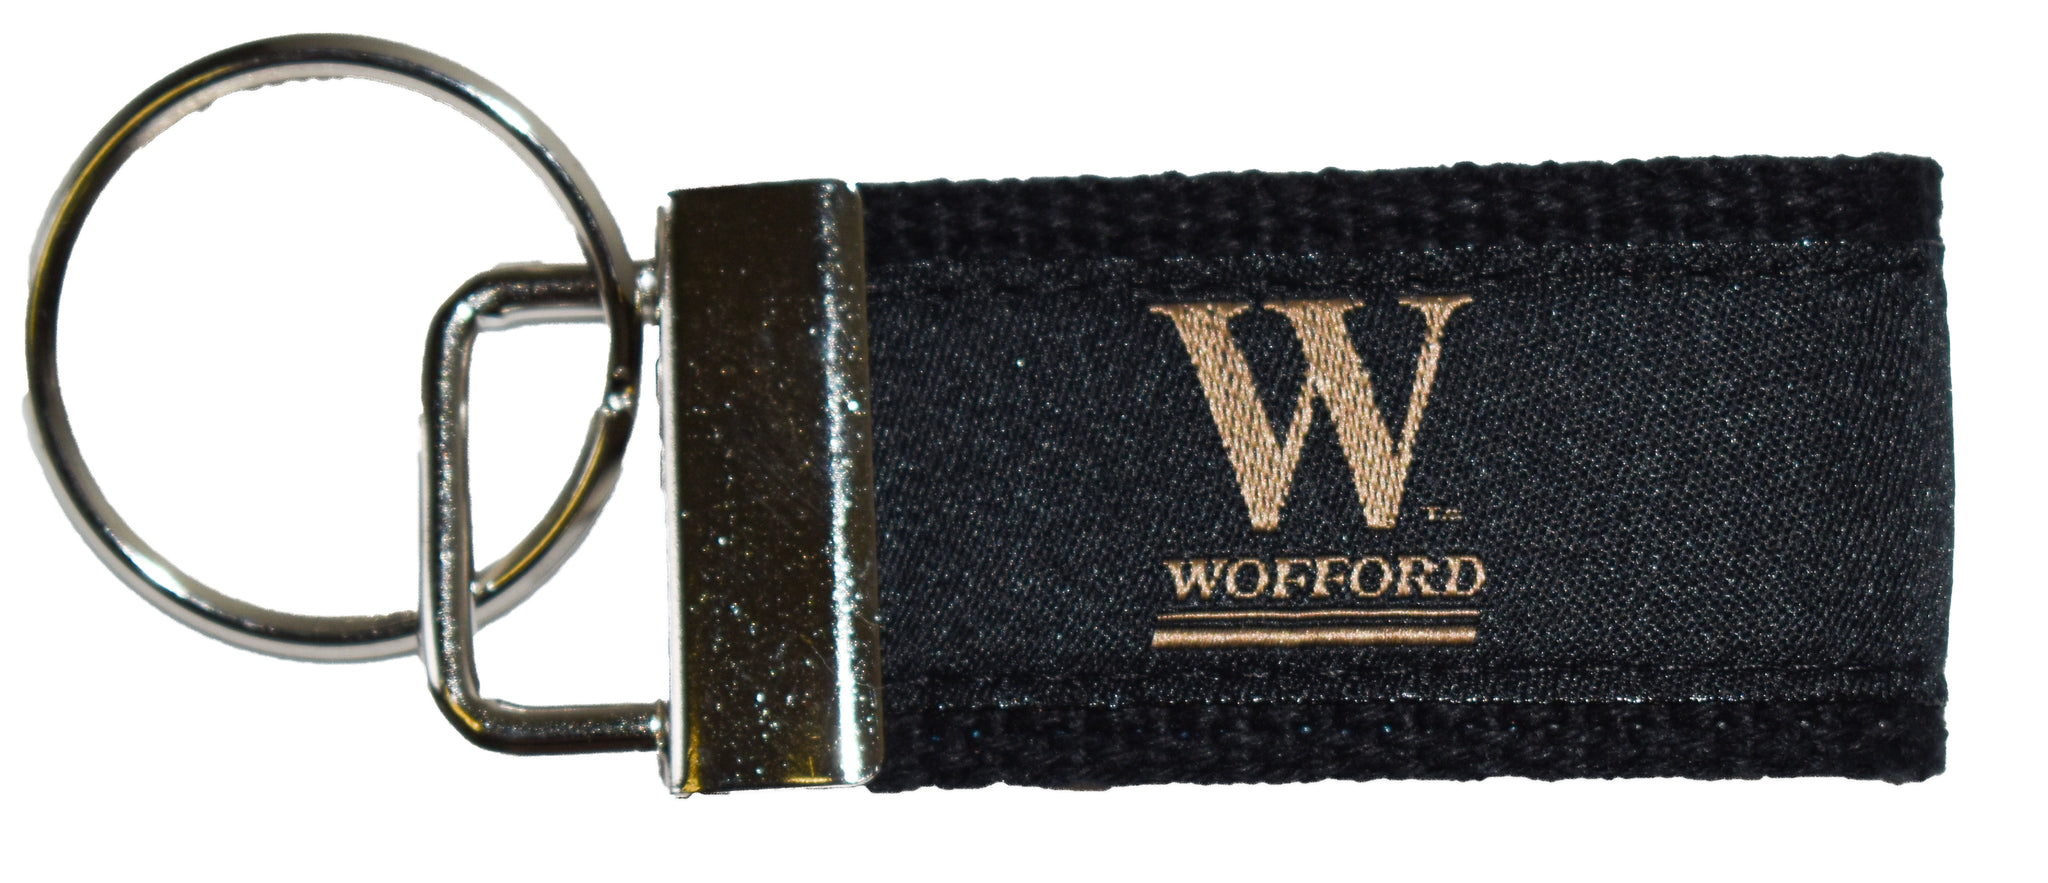 Wofford College Key Fob